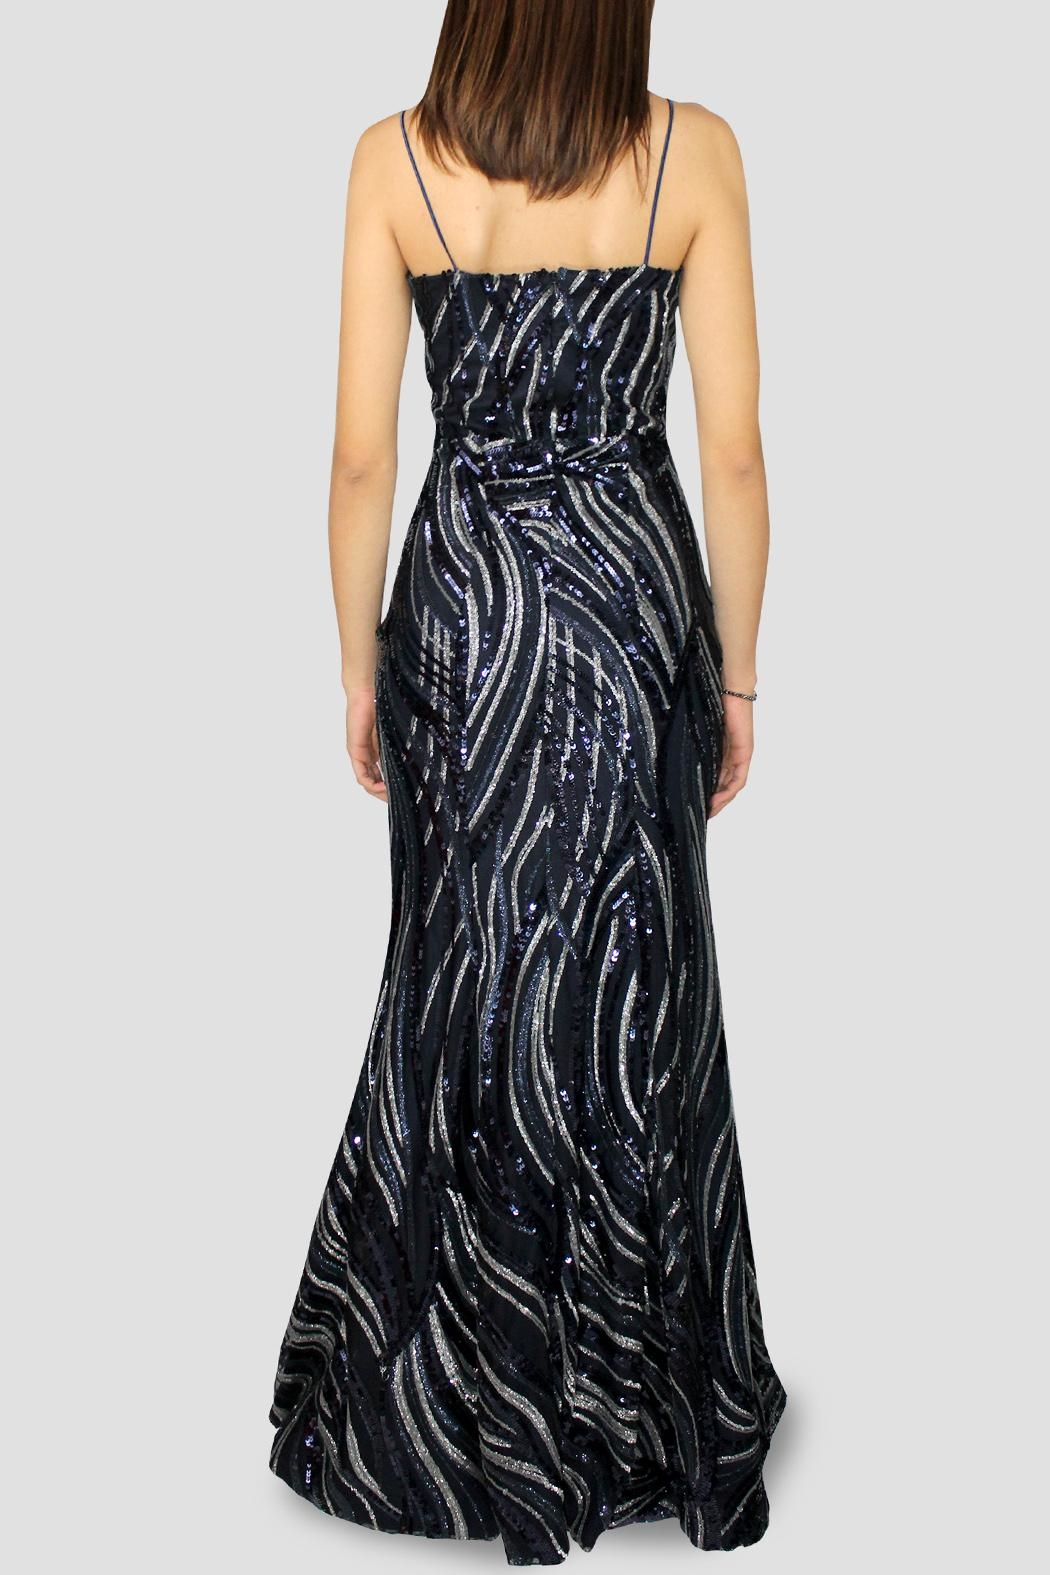 SoZu Strapless Lineal Sequin - Side Cropped Image